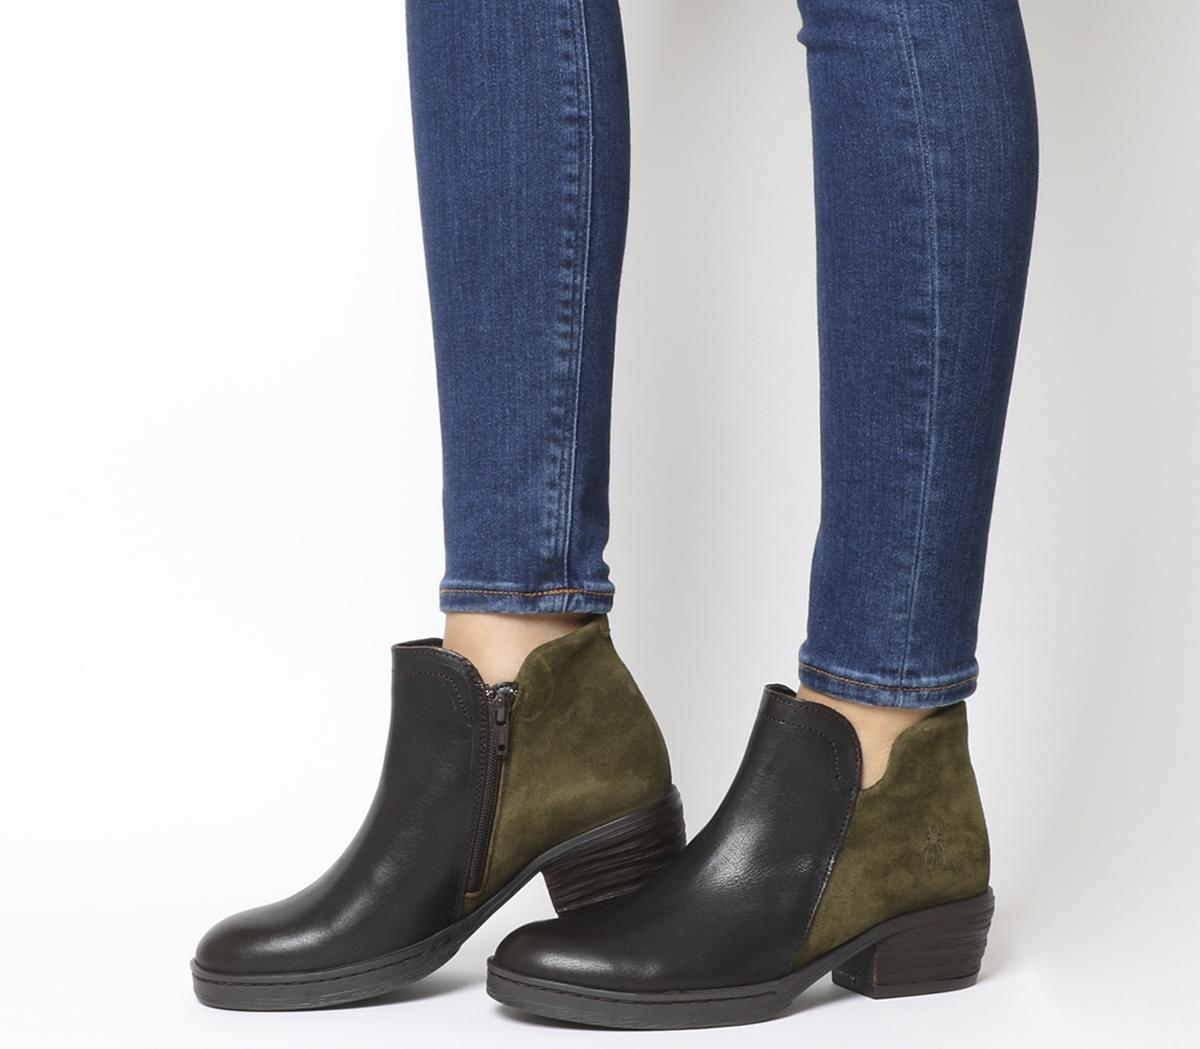 Cled Lo Boots